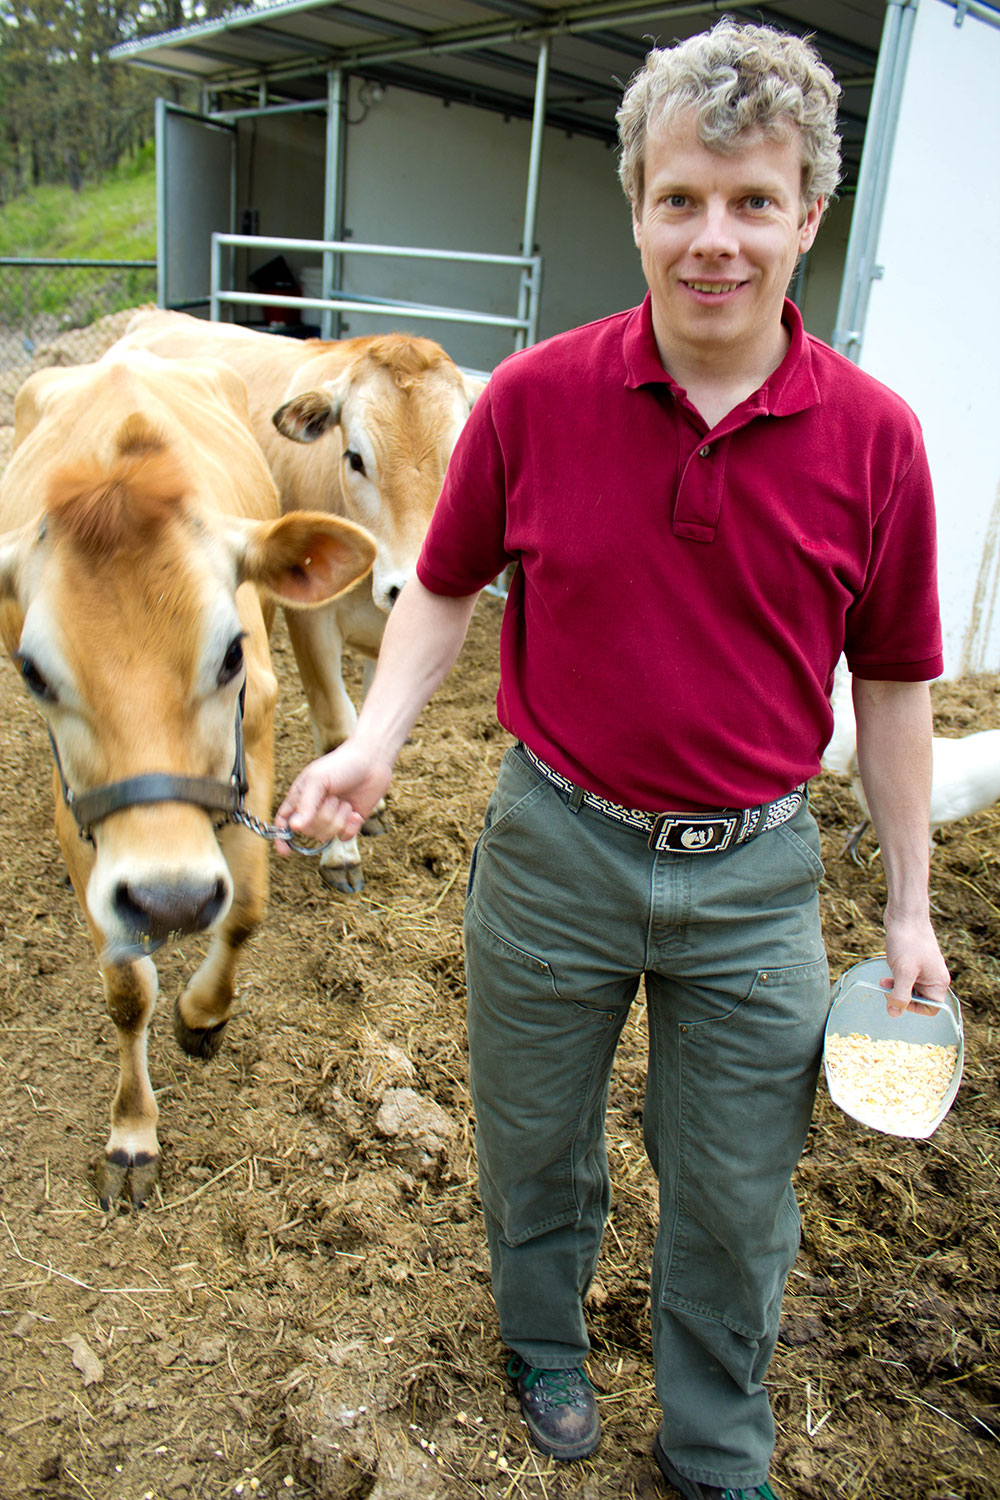 Mike-Omeg-Farmer-with-Cow.jpg